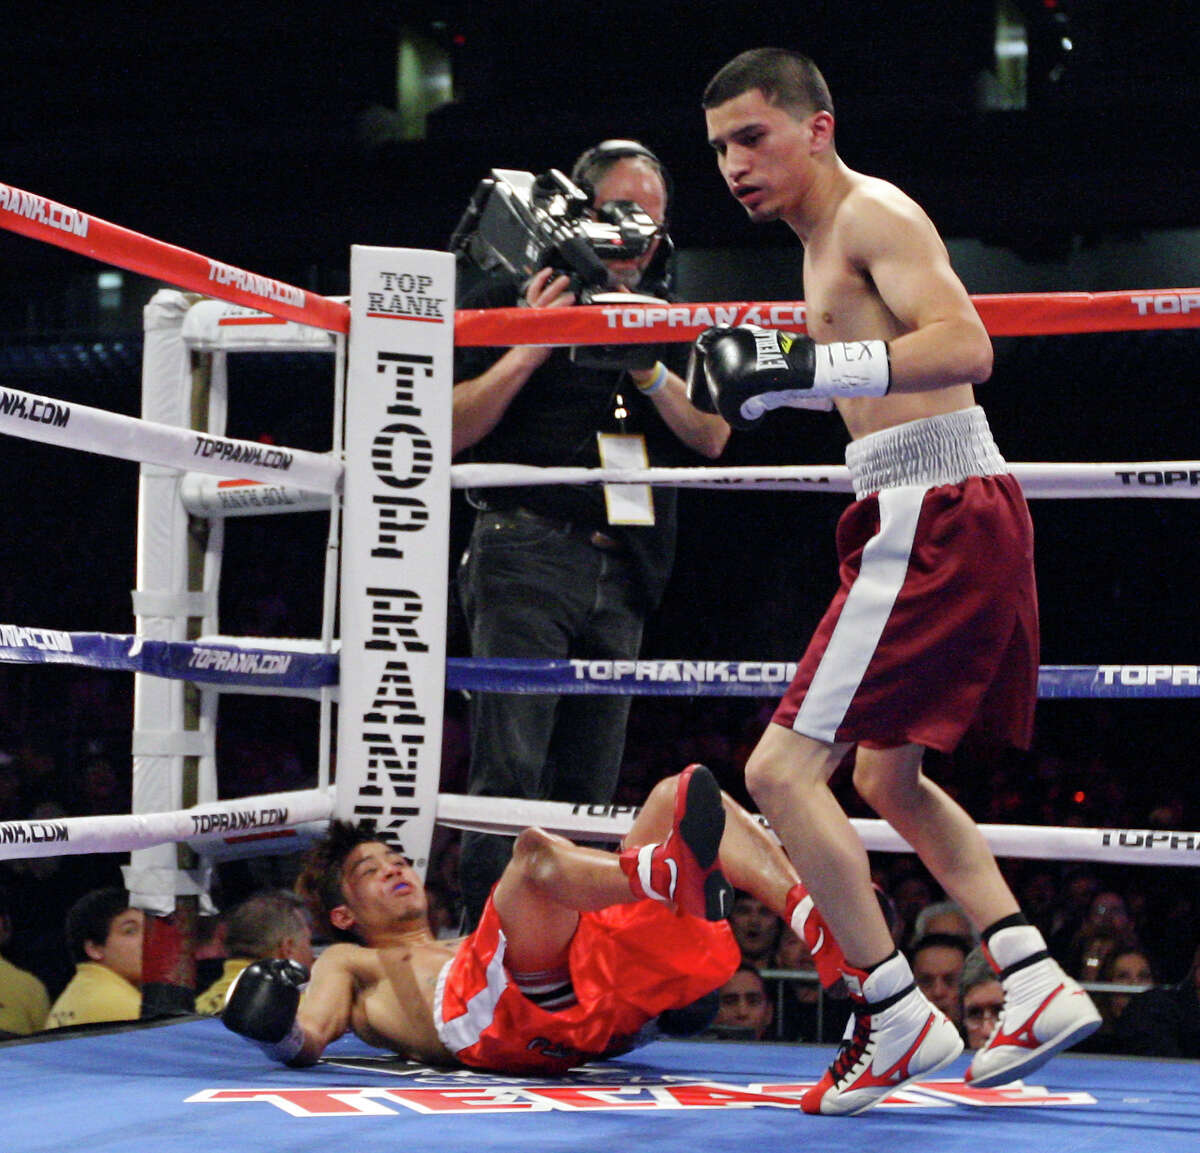 FOR SPORTS - Richard Hernandez (left) falls to the mat after being hit by Adam Lopez during the first round of their bantamweight fight Saturday Feb. 4, 2012 at the Alamodome. Lopez won by TKO in the first round. (PHOTO BY EDWARD A. ORNELAS/SAN ANTONIO EXPRESS-NEWS)